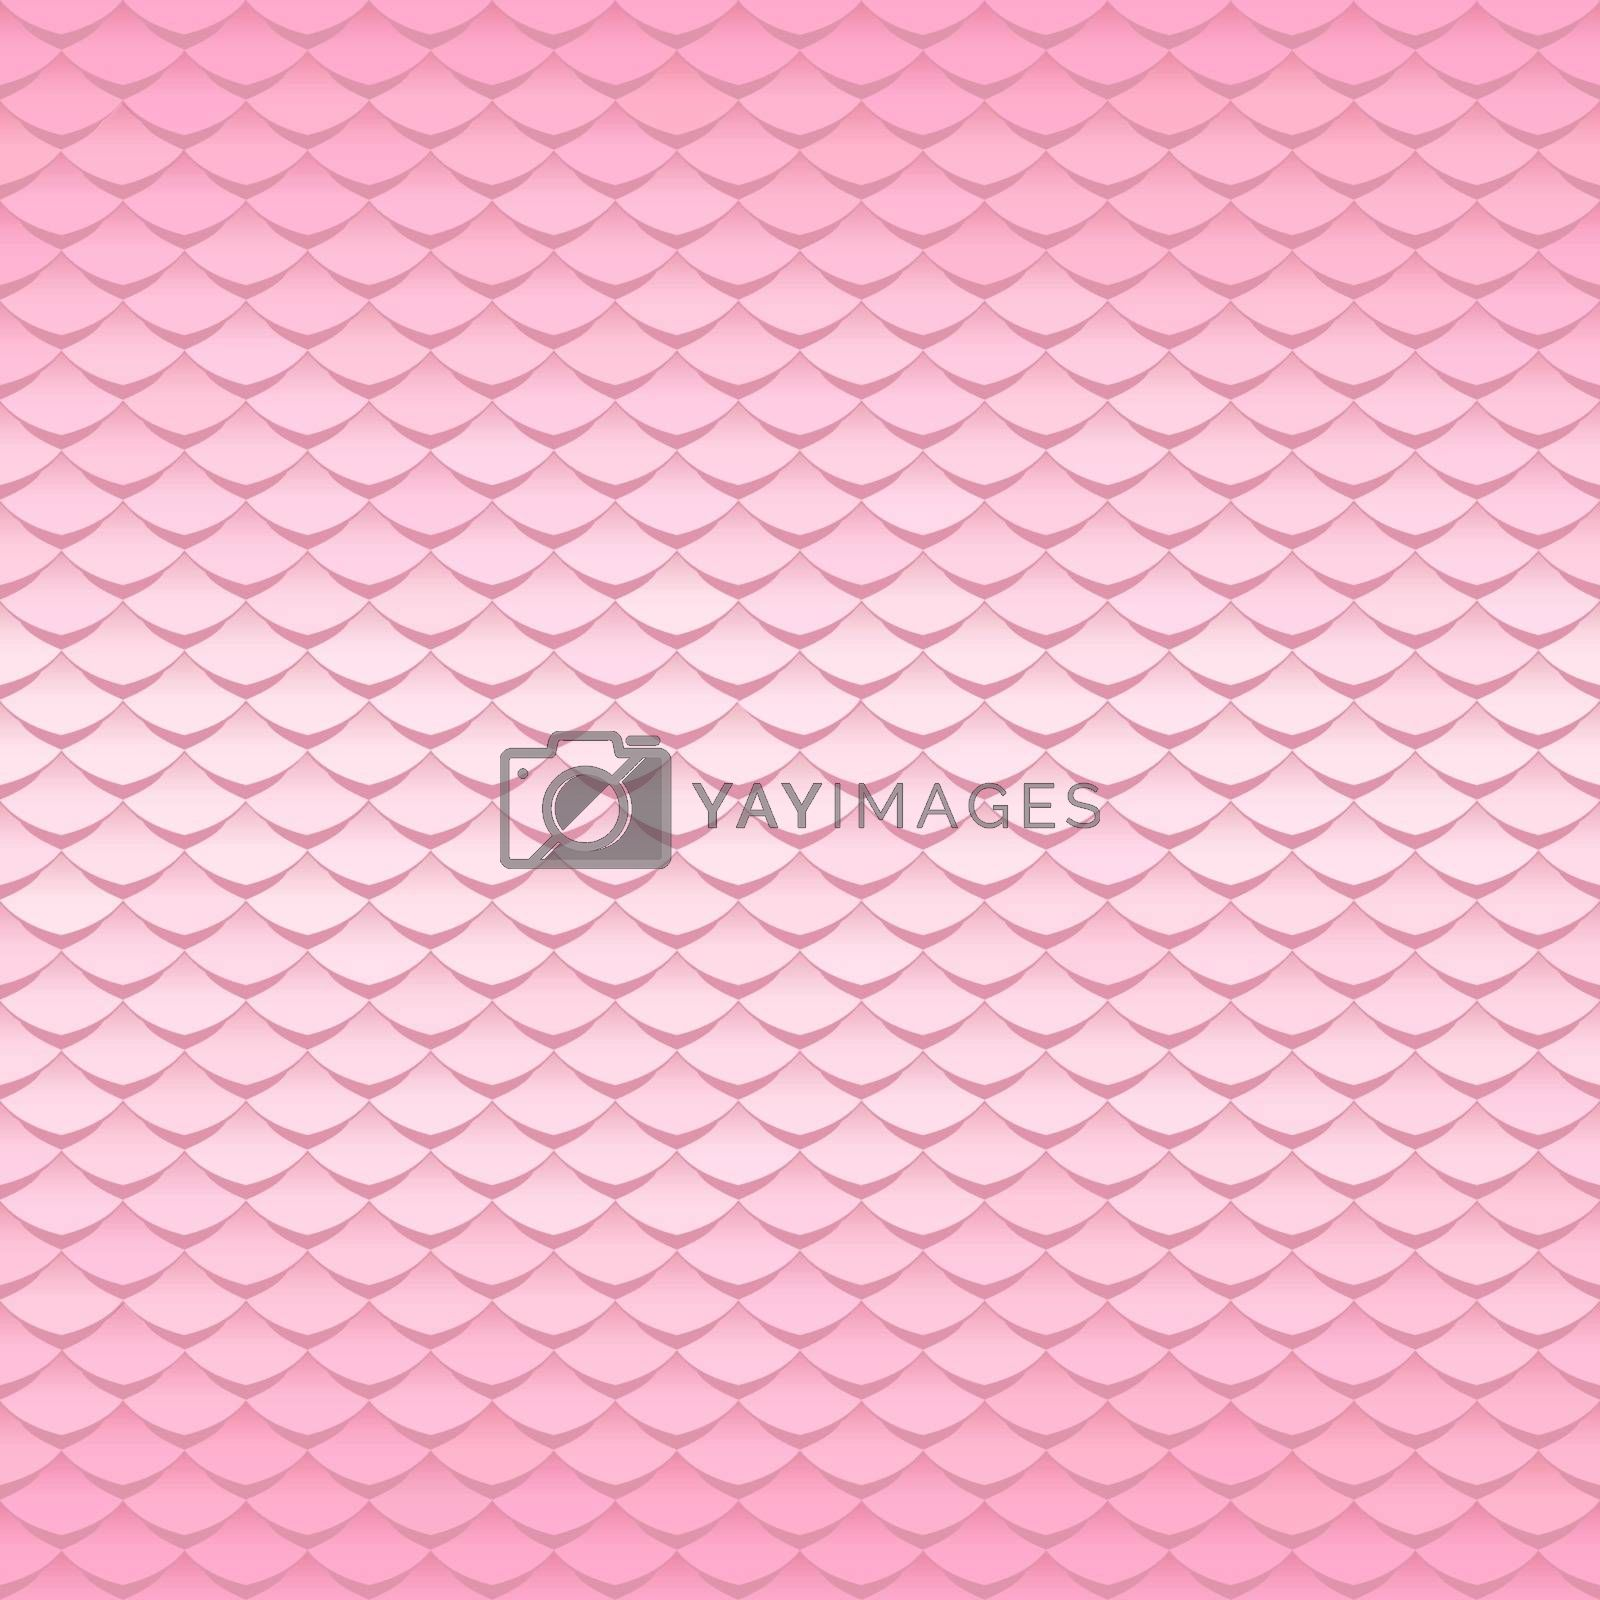 Pink texture. Abstract scale pattern. Roof tiles background. by ESSL